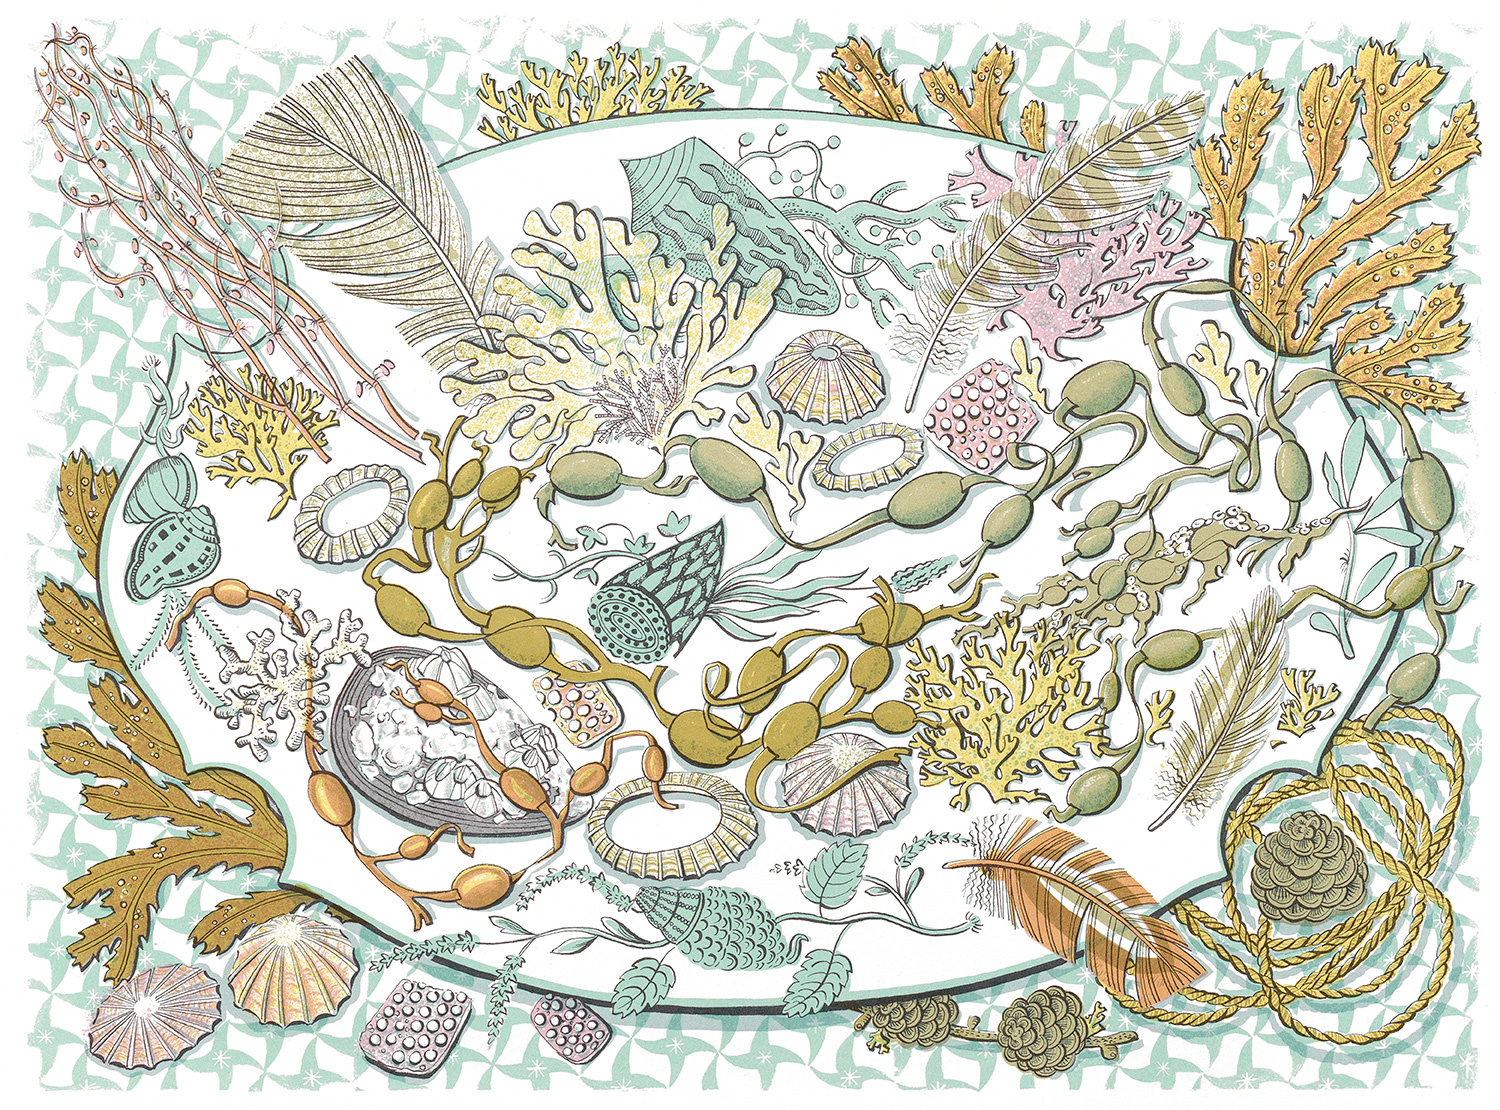 Shell, Seaweed & Feather by Angie Lewin